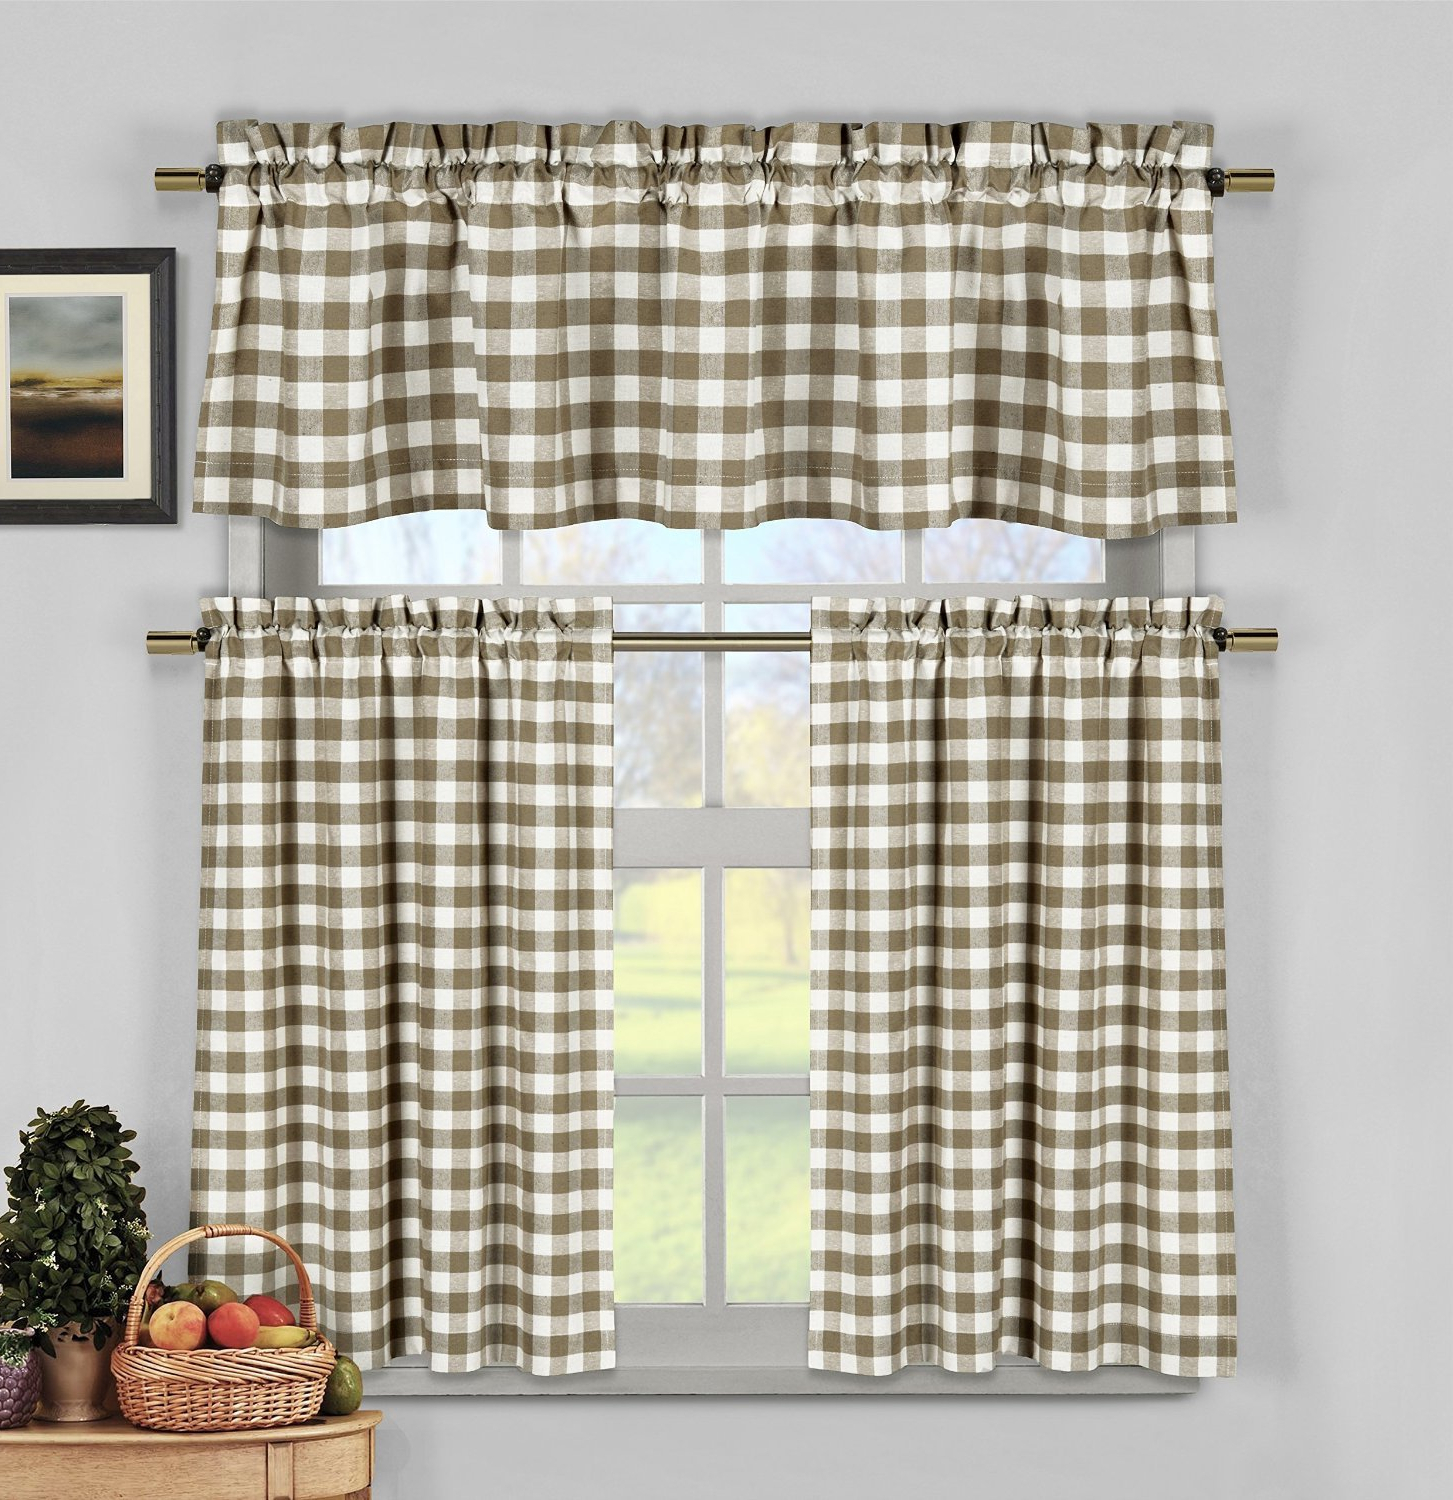 Home Maison Kingston Plaid Gingham Checkered Cotton Blend Kitchen 3 Piece  Window Curtain Tier & Valance Set, 2 Tiers 29 X 36 & One Valance 58 X 15, In Widely Used Classic Navy Cotton Blend Buffalo Check Kitchen Curtain Sets (Gallery 3 of 20)